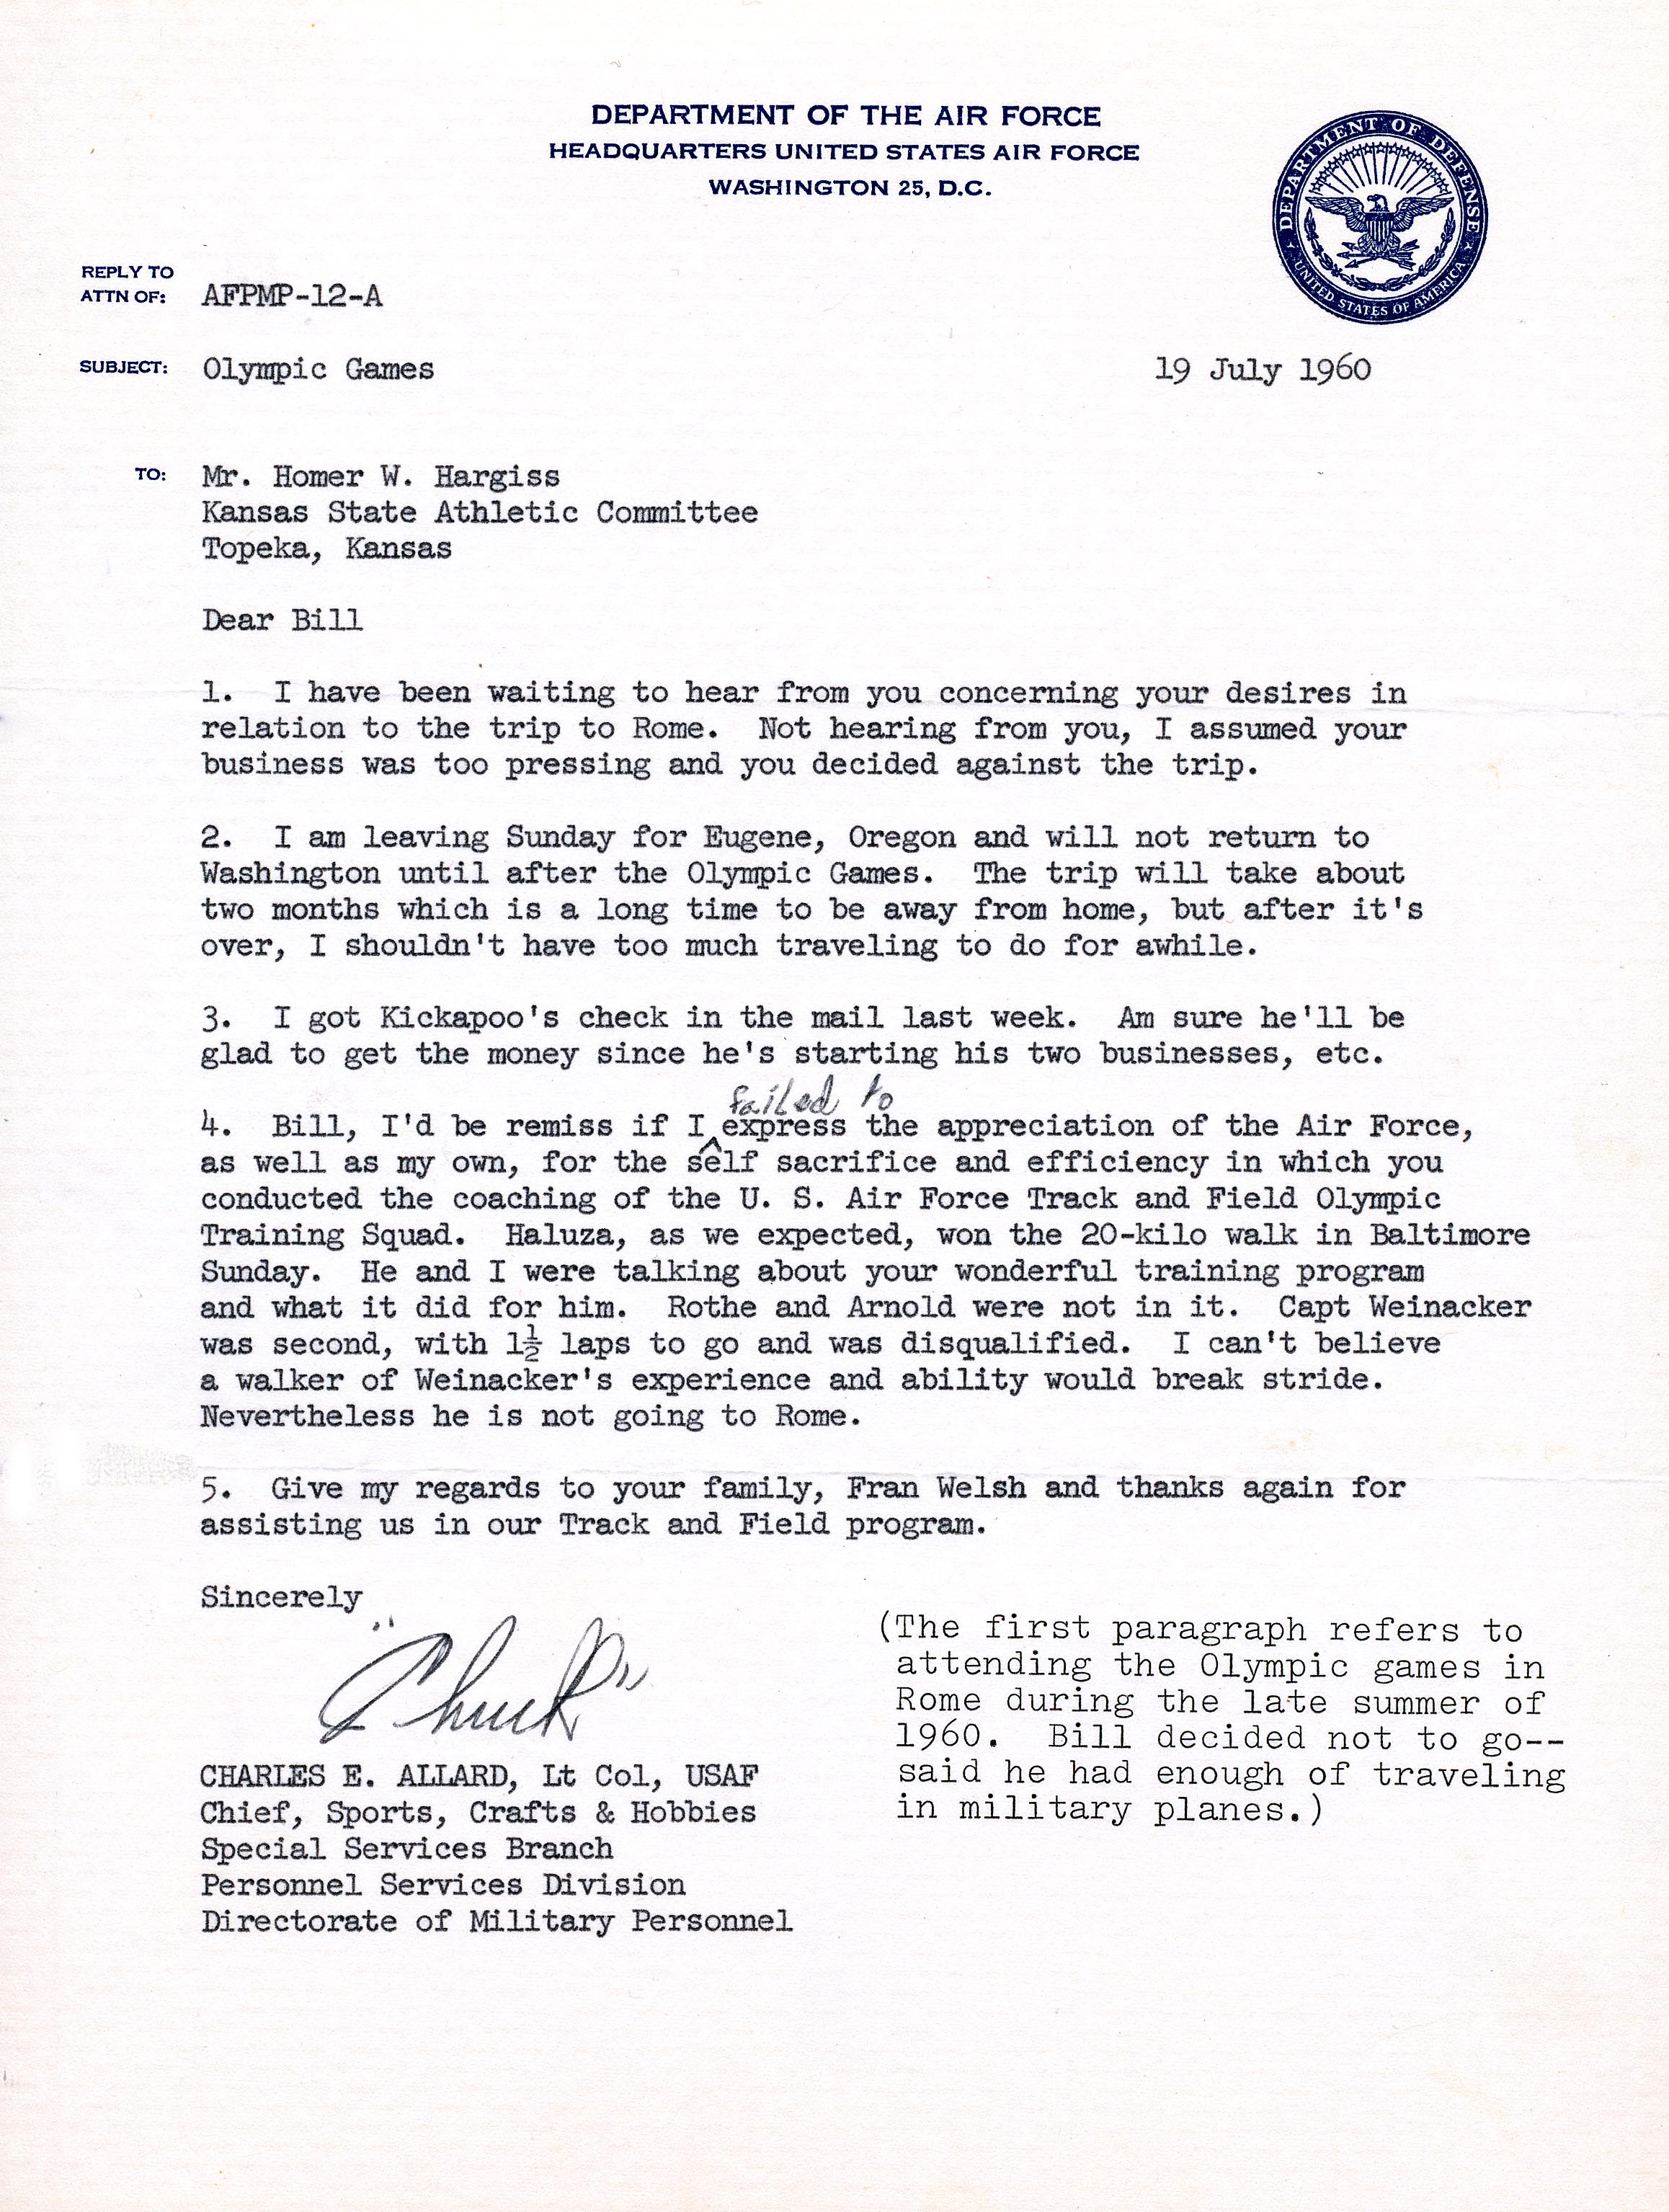 letter format air force letter format letter of appreciation from usaf to bill hargiss